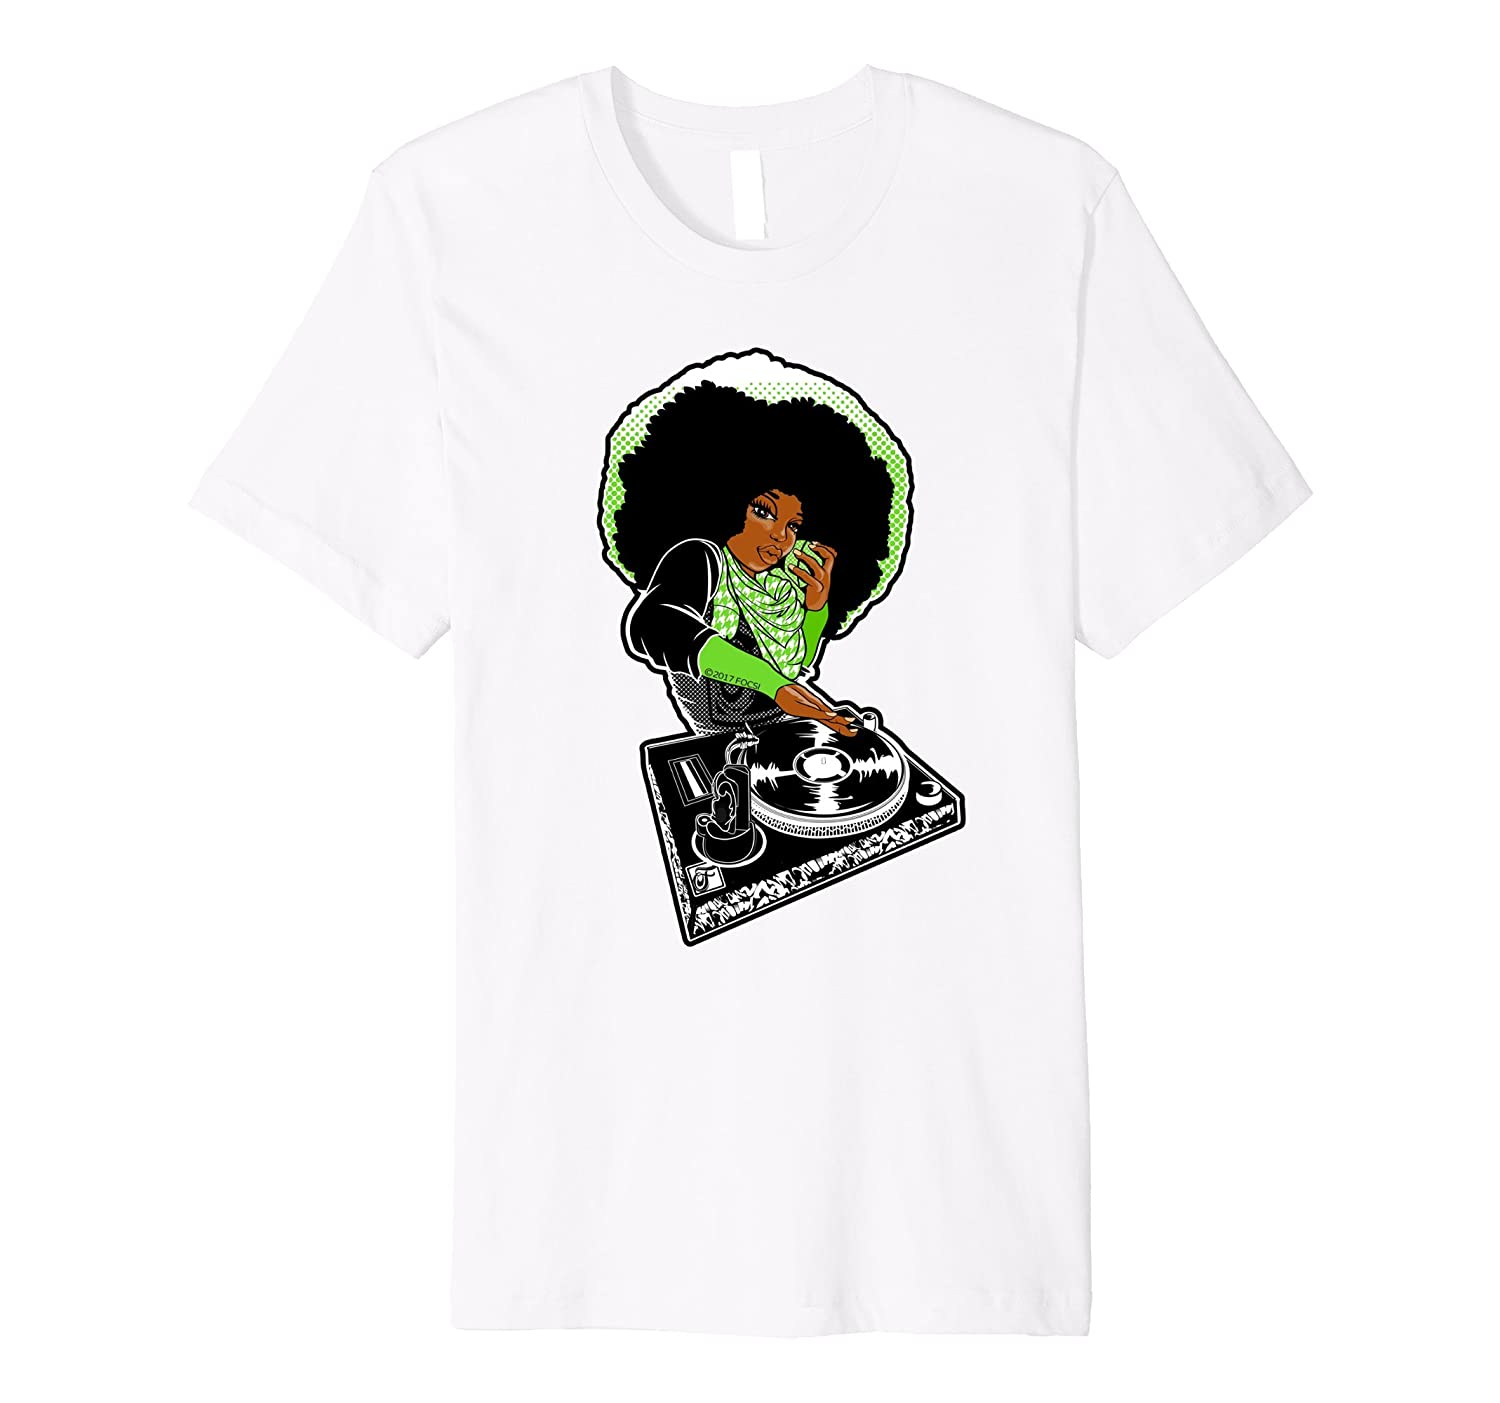 66597dee1 Focsi Femcee DJ Downtown Focsi Brown T-Shirt-Hip Hop-TJ – theteejob